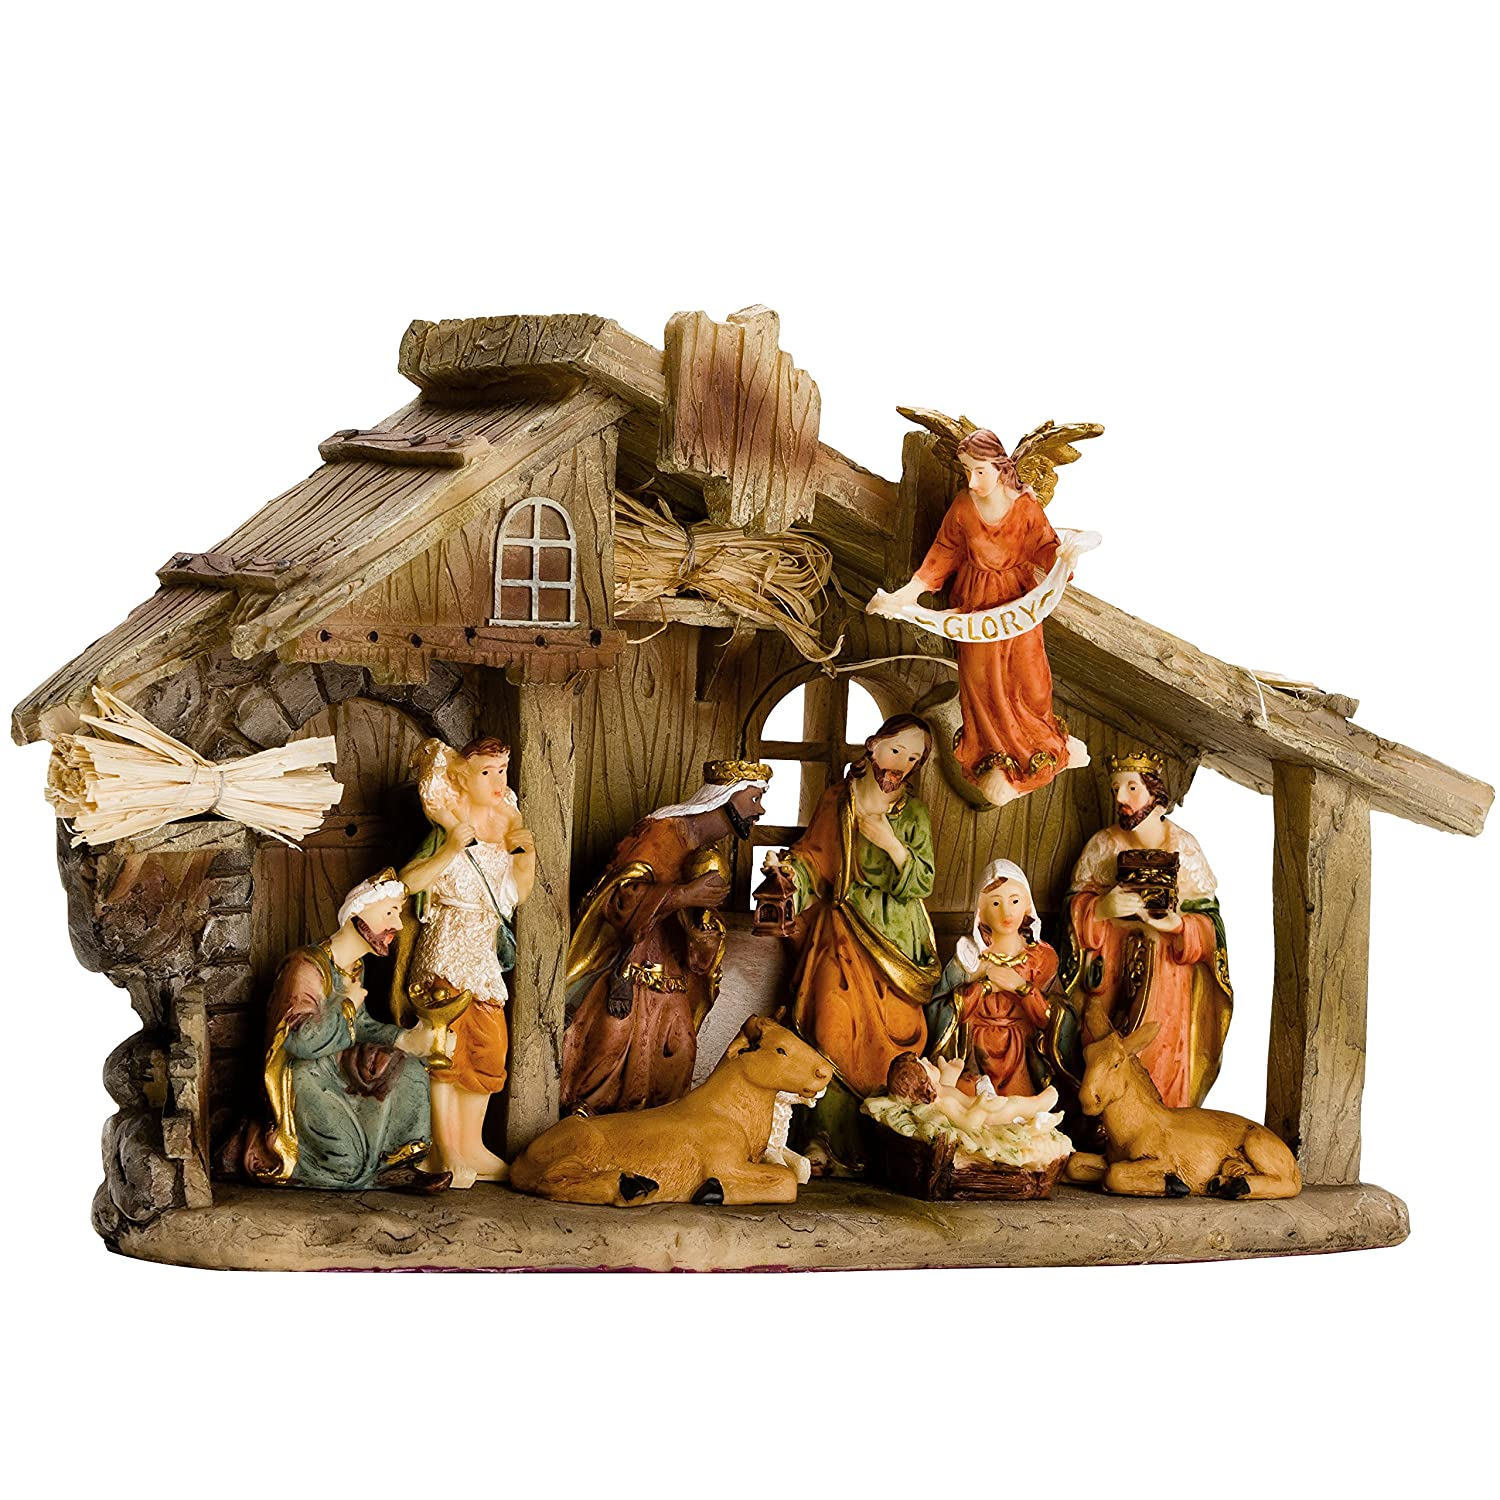 BRUBAKER Traditional Nativity Set - Stable with 11 Resin Figurines Designed in Germany